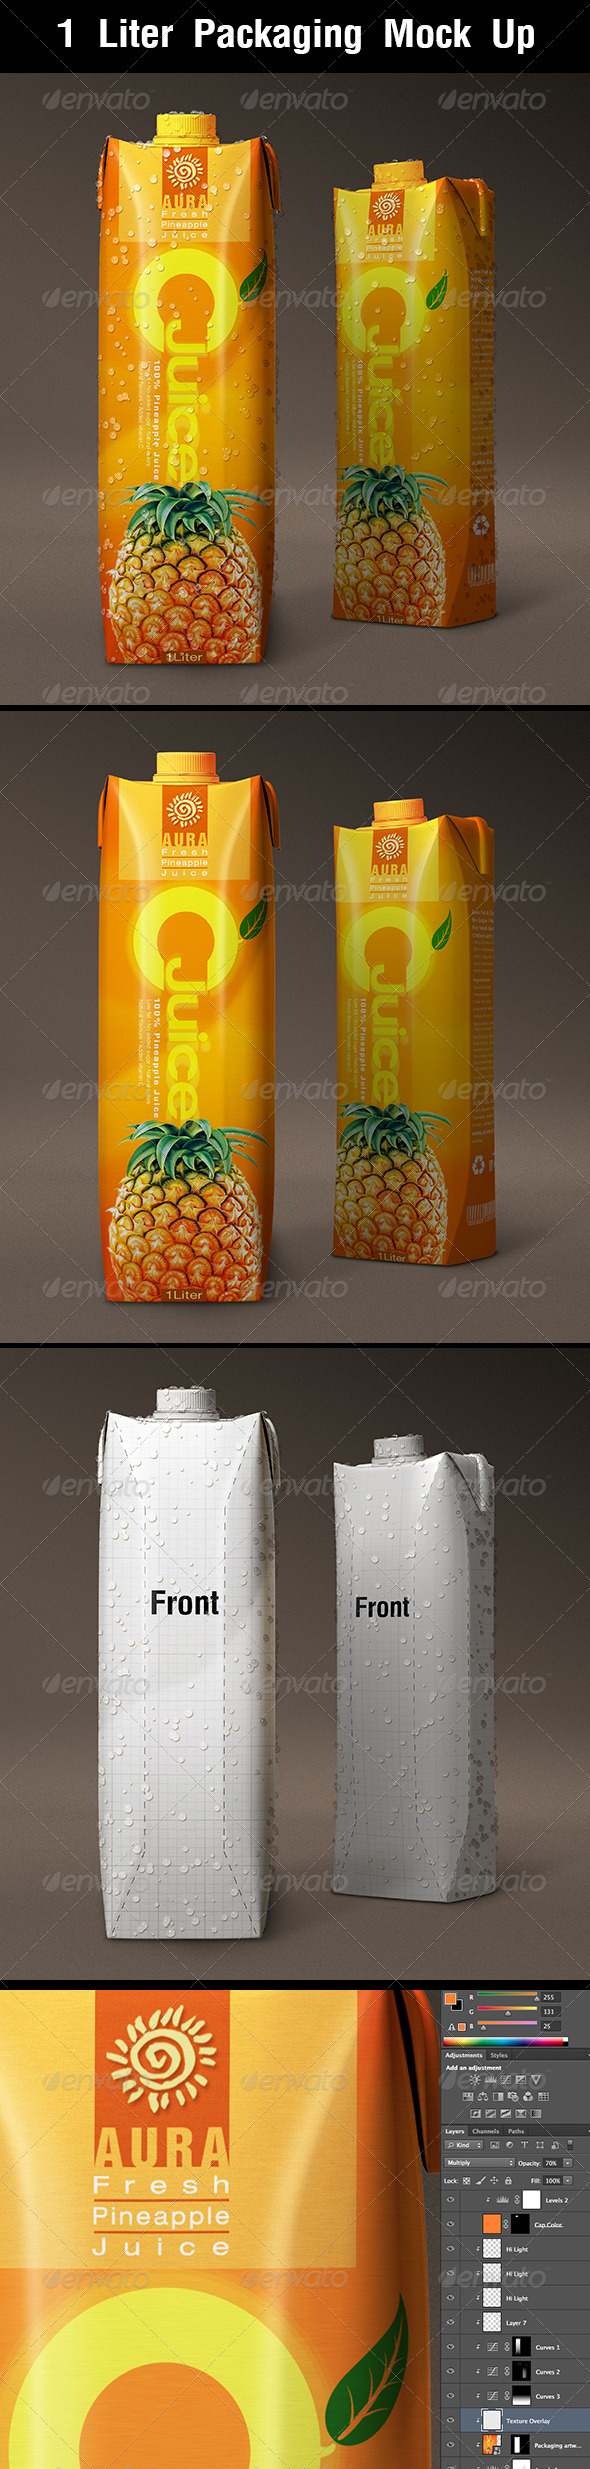 GraphicRiver 1 Liter Carton Packaging Mock Up 8620647